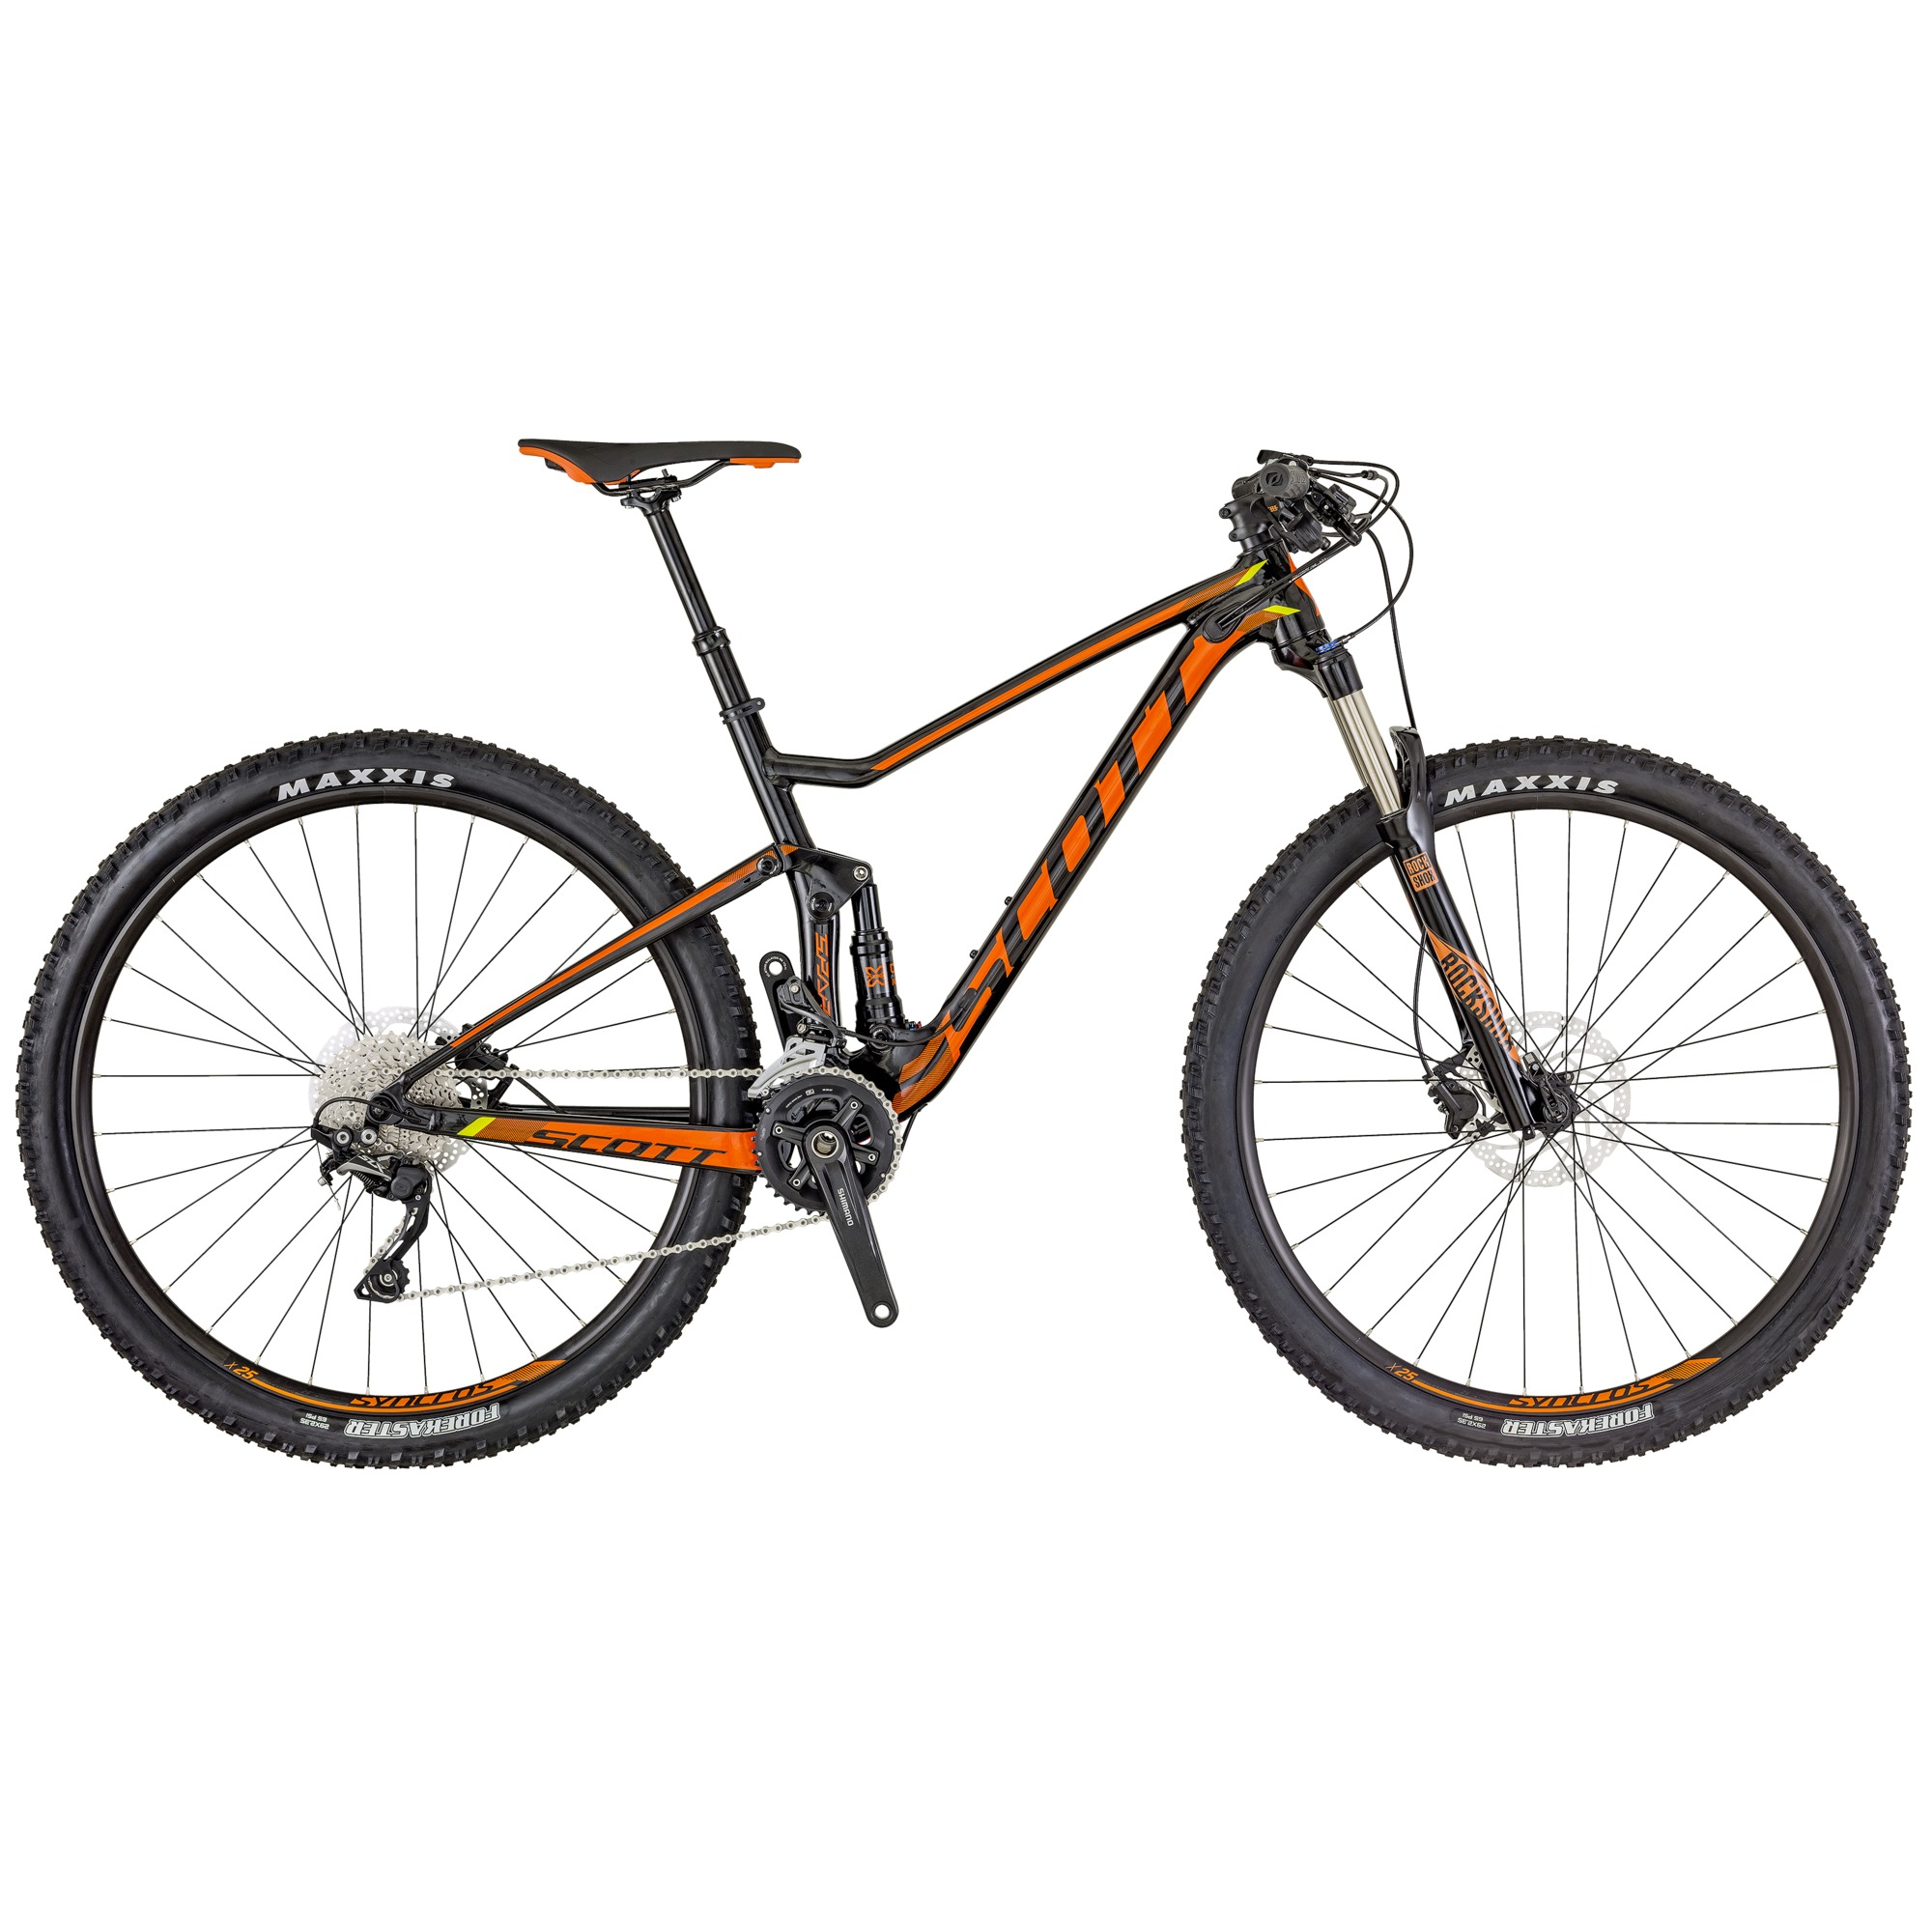 SCOTT Spark 960 Bike XL - Zweirad Homann